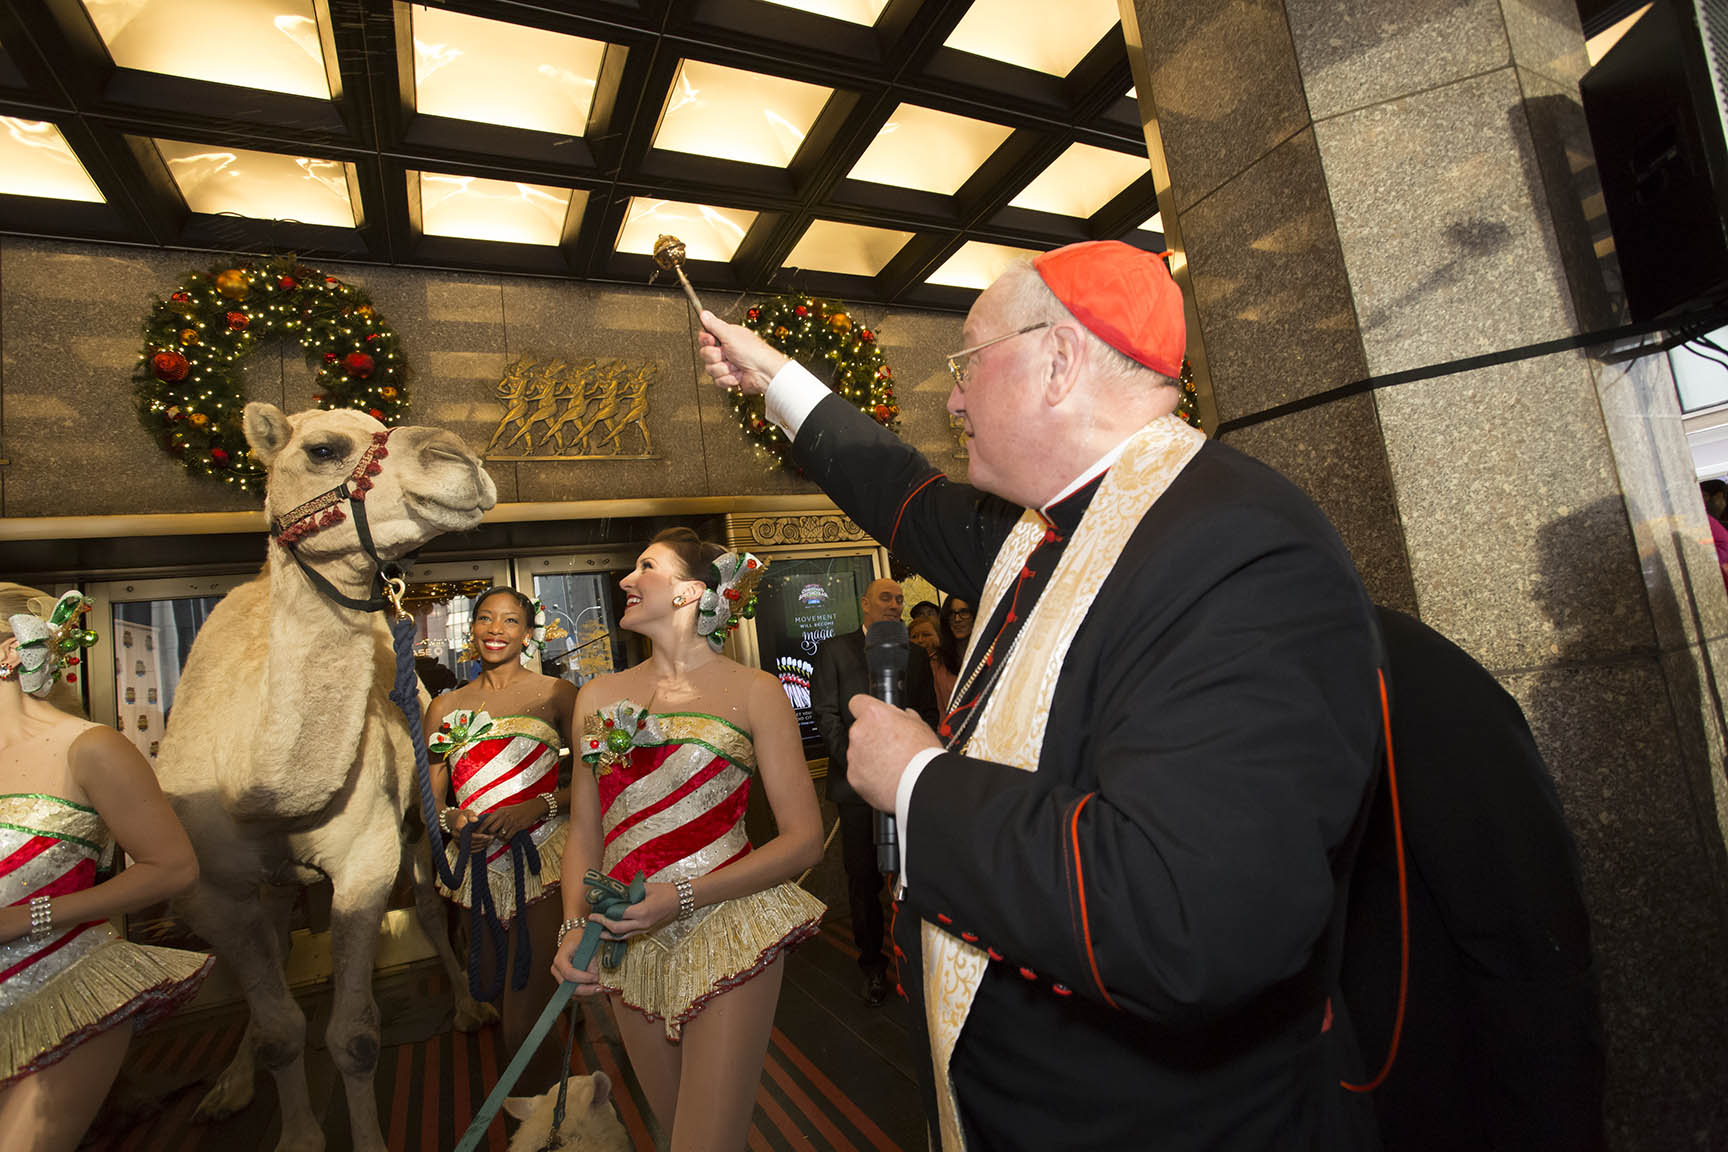 November 5, 2015 The annual animal load in for the Radio City Christmas Spectacular takes place at Radio City Music Hall in New York City. The animals are blessed by Cardinal Dolan before being brought in for first rehearsal for Christmas Spectacular.